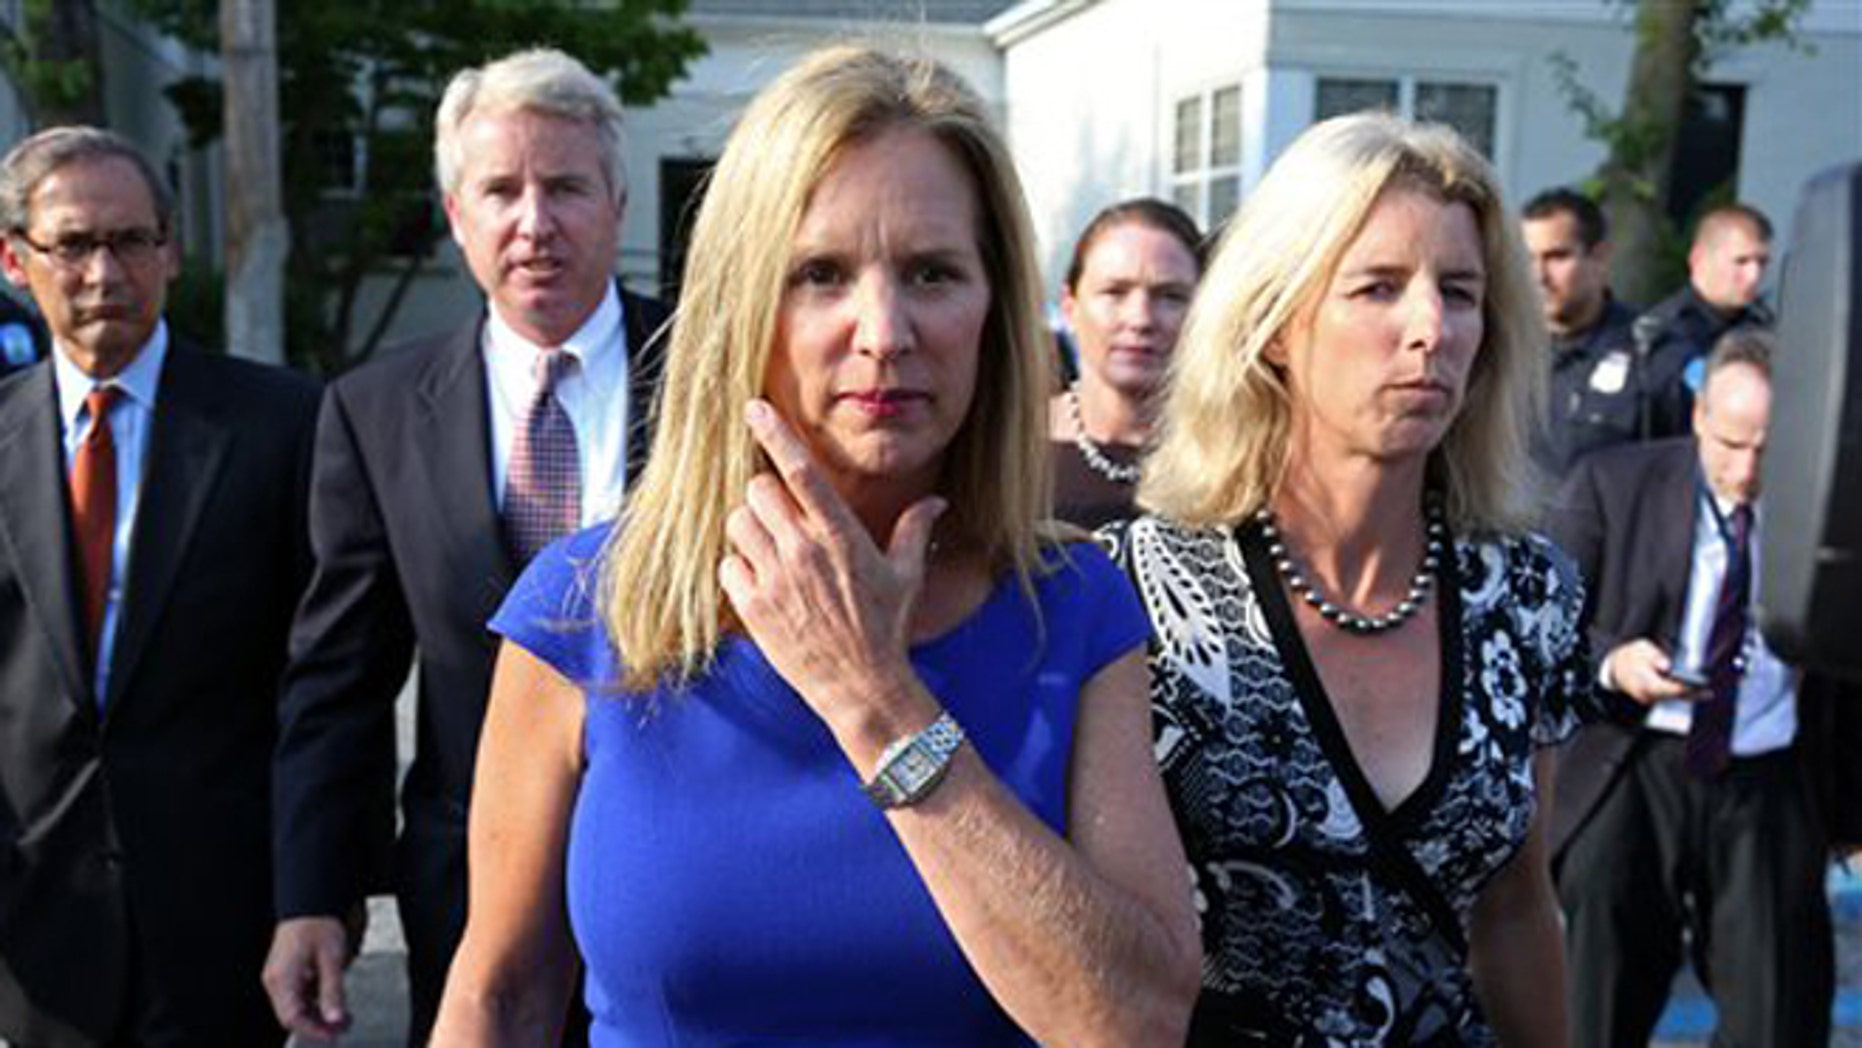 July 17, 2012: Kerry Kennedy, ex-wife of New York Gov. Andrew Cuomo, flanked by her brother Christopher Kennedy, center left, and sister Rory Kennedy, right, walks from  the North Castle Justice Court in Armonk, N.Y.